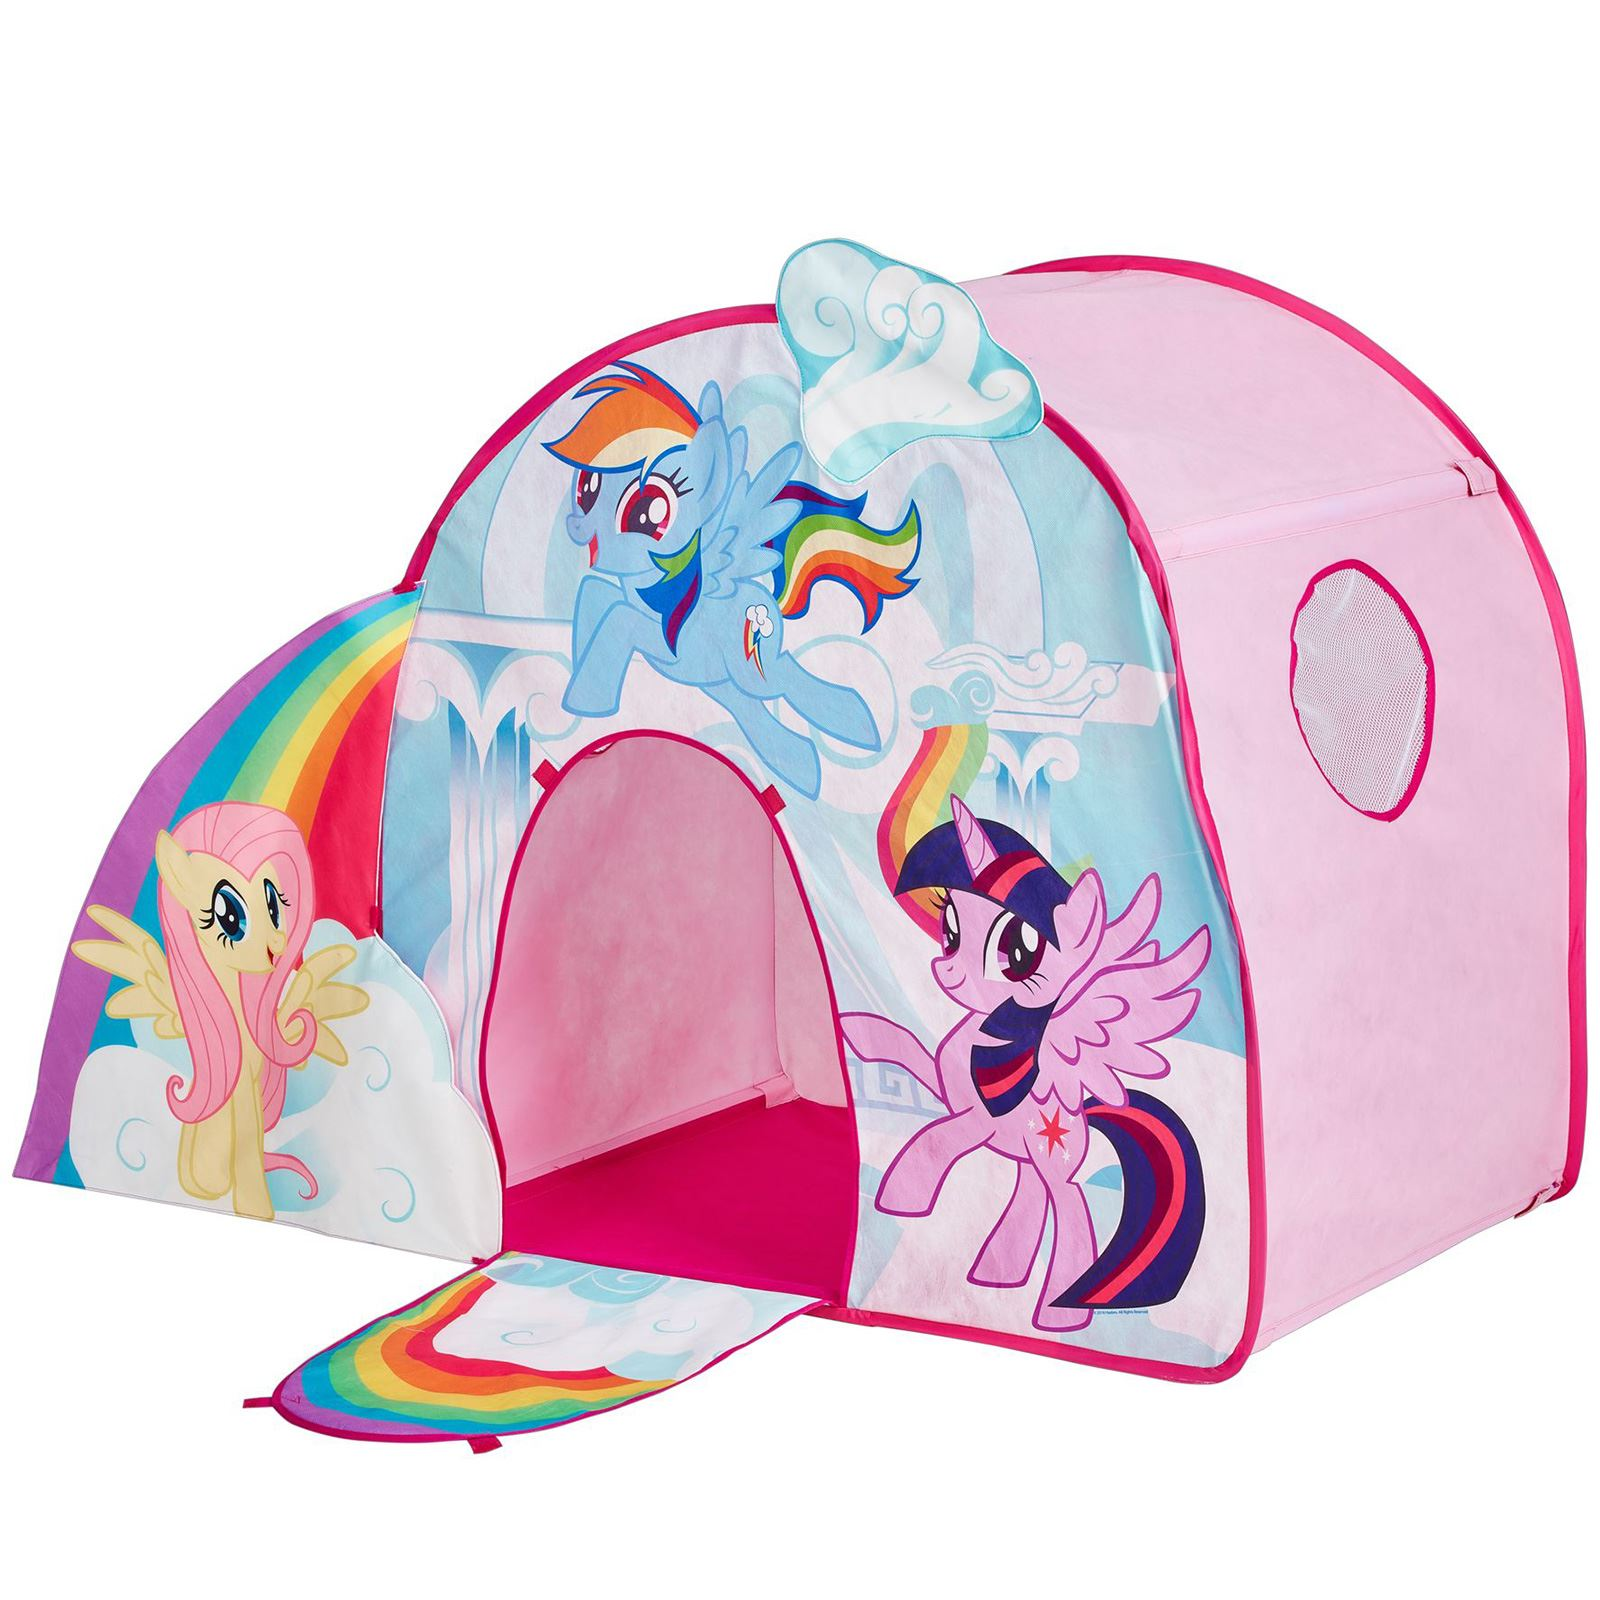 POP-UP-PLAY-TENTS-FEATURE-KIDS-DISNEY-PRINCESS-  sc 1 st  eBay : pop up childrens tent - memphite.com